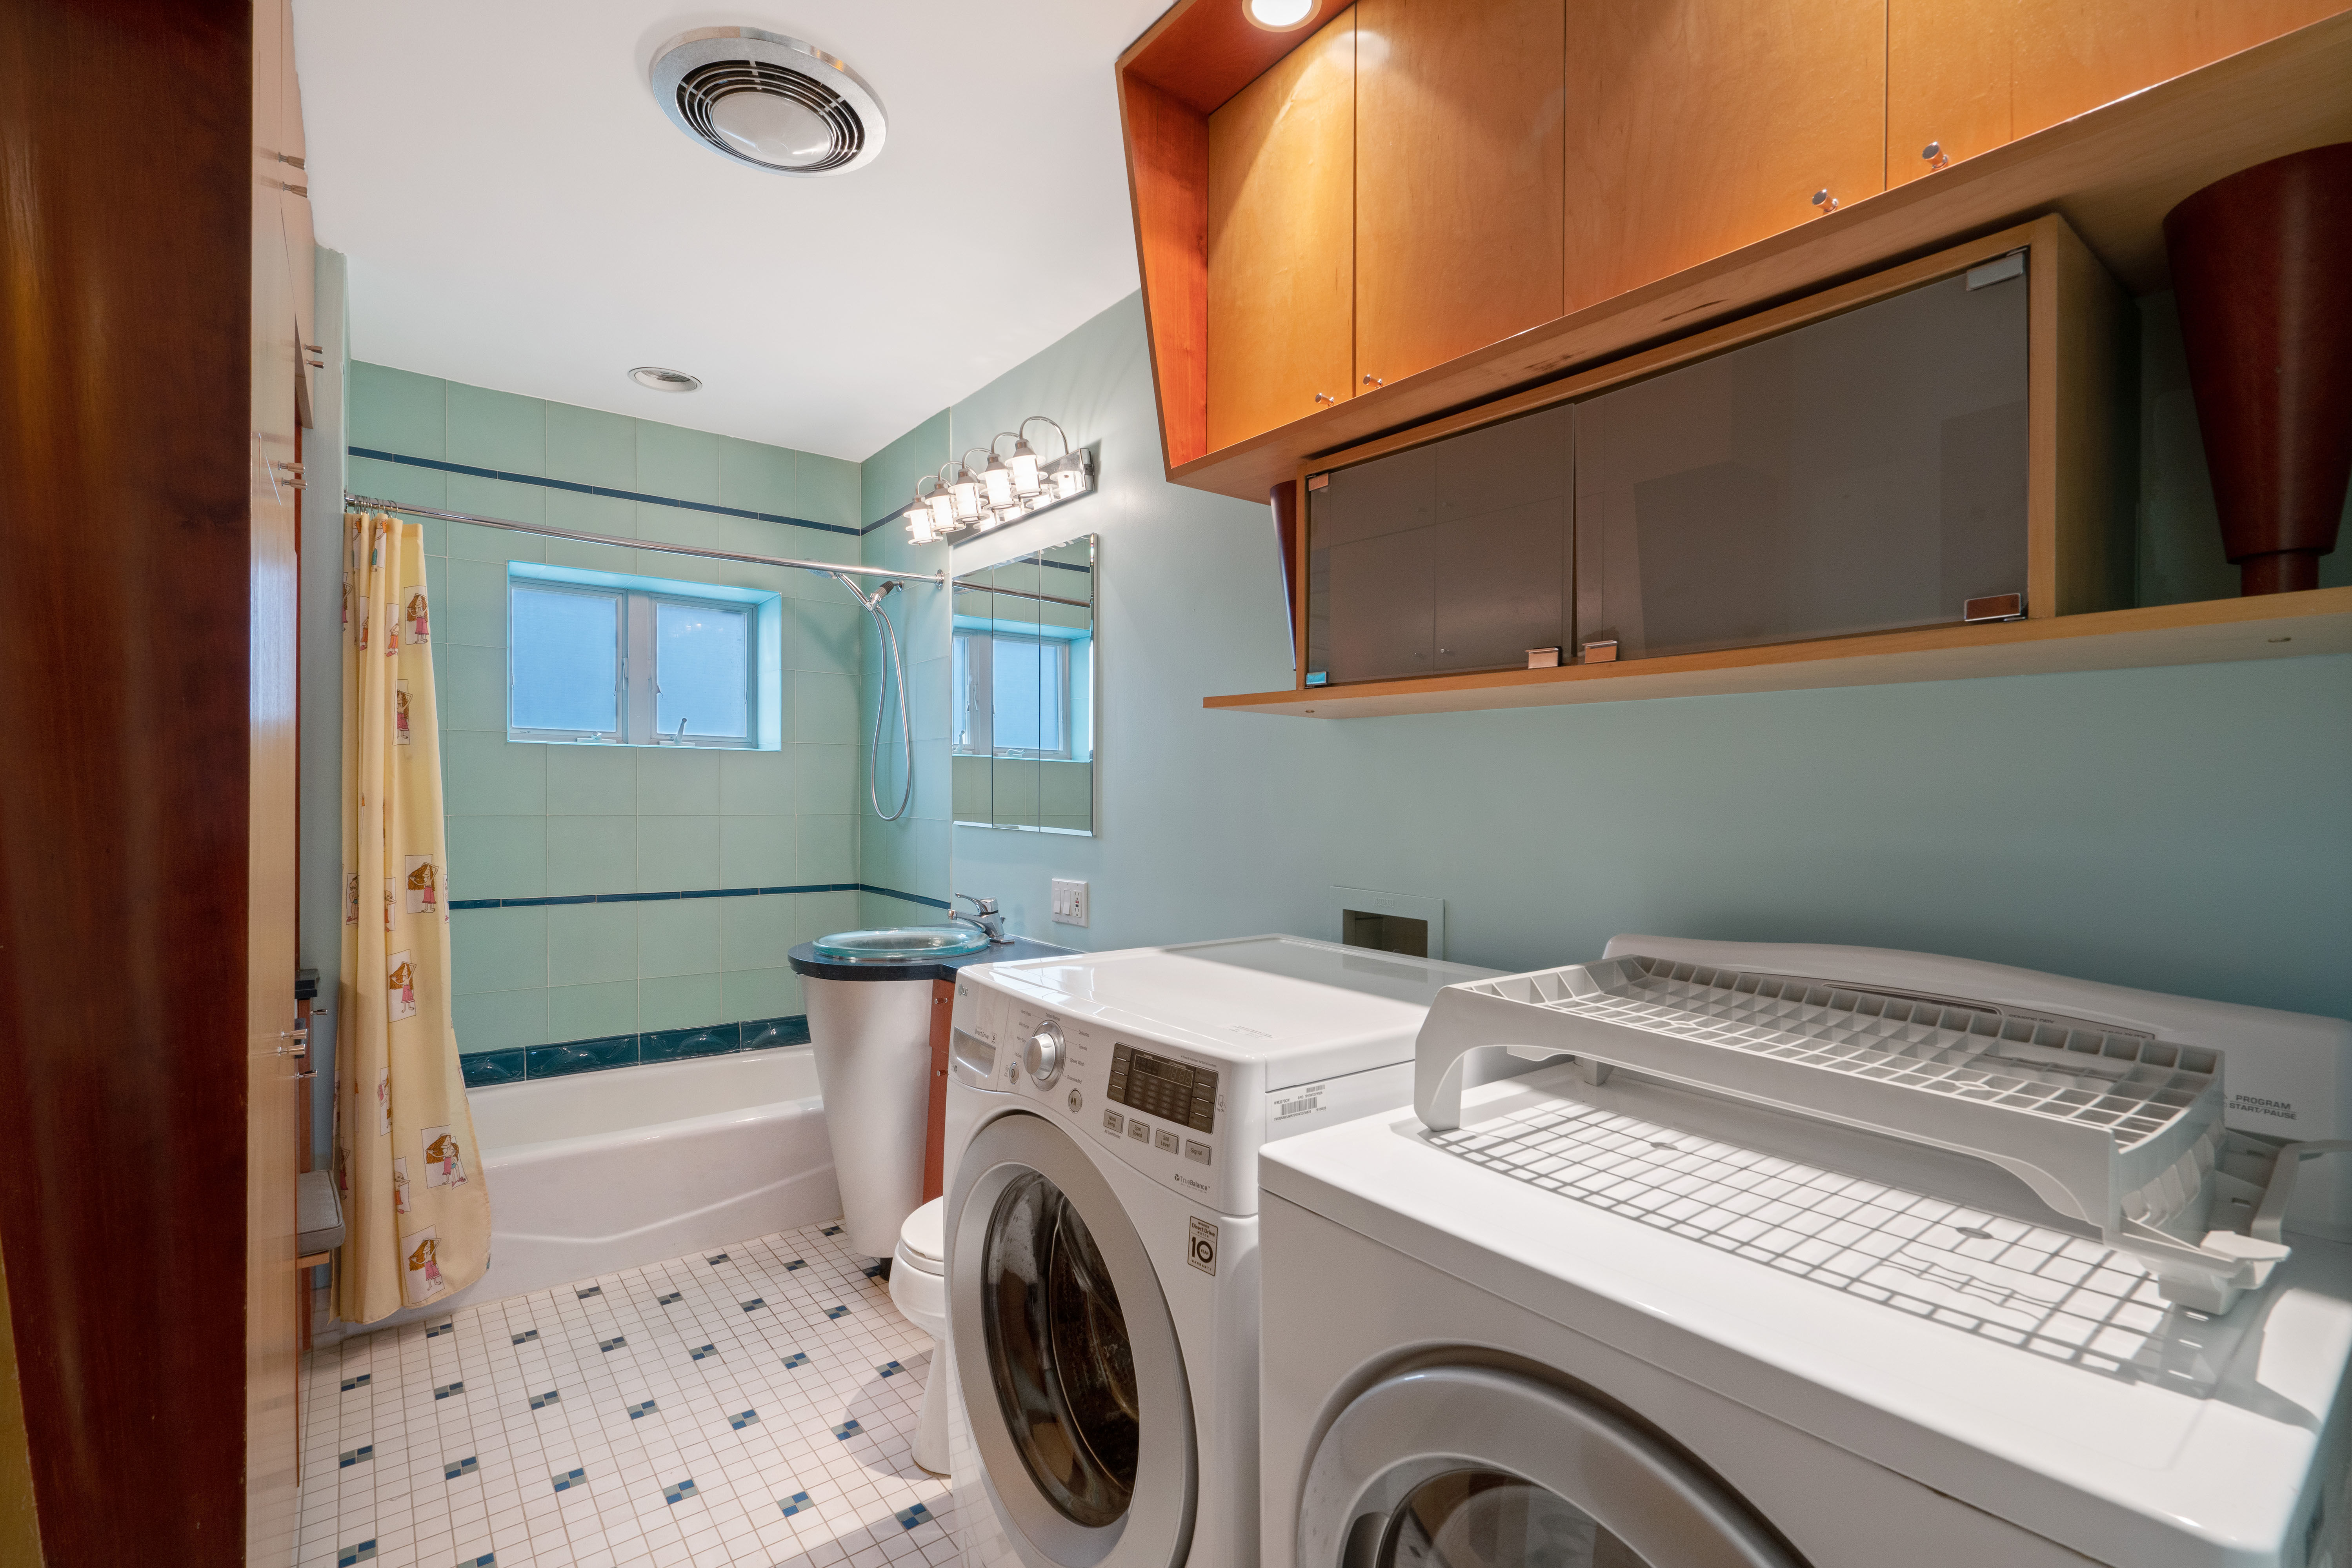 594 2nd St Photo 12 - BROWNSTONER-LISTING-47512a55ccfbbeb19b0a8fb315f62163